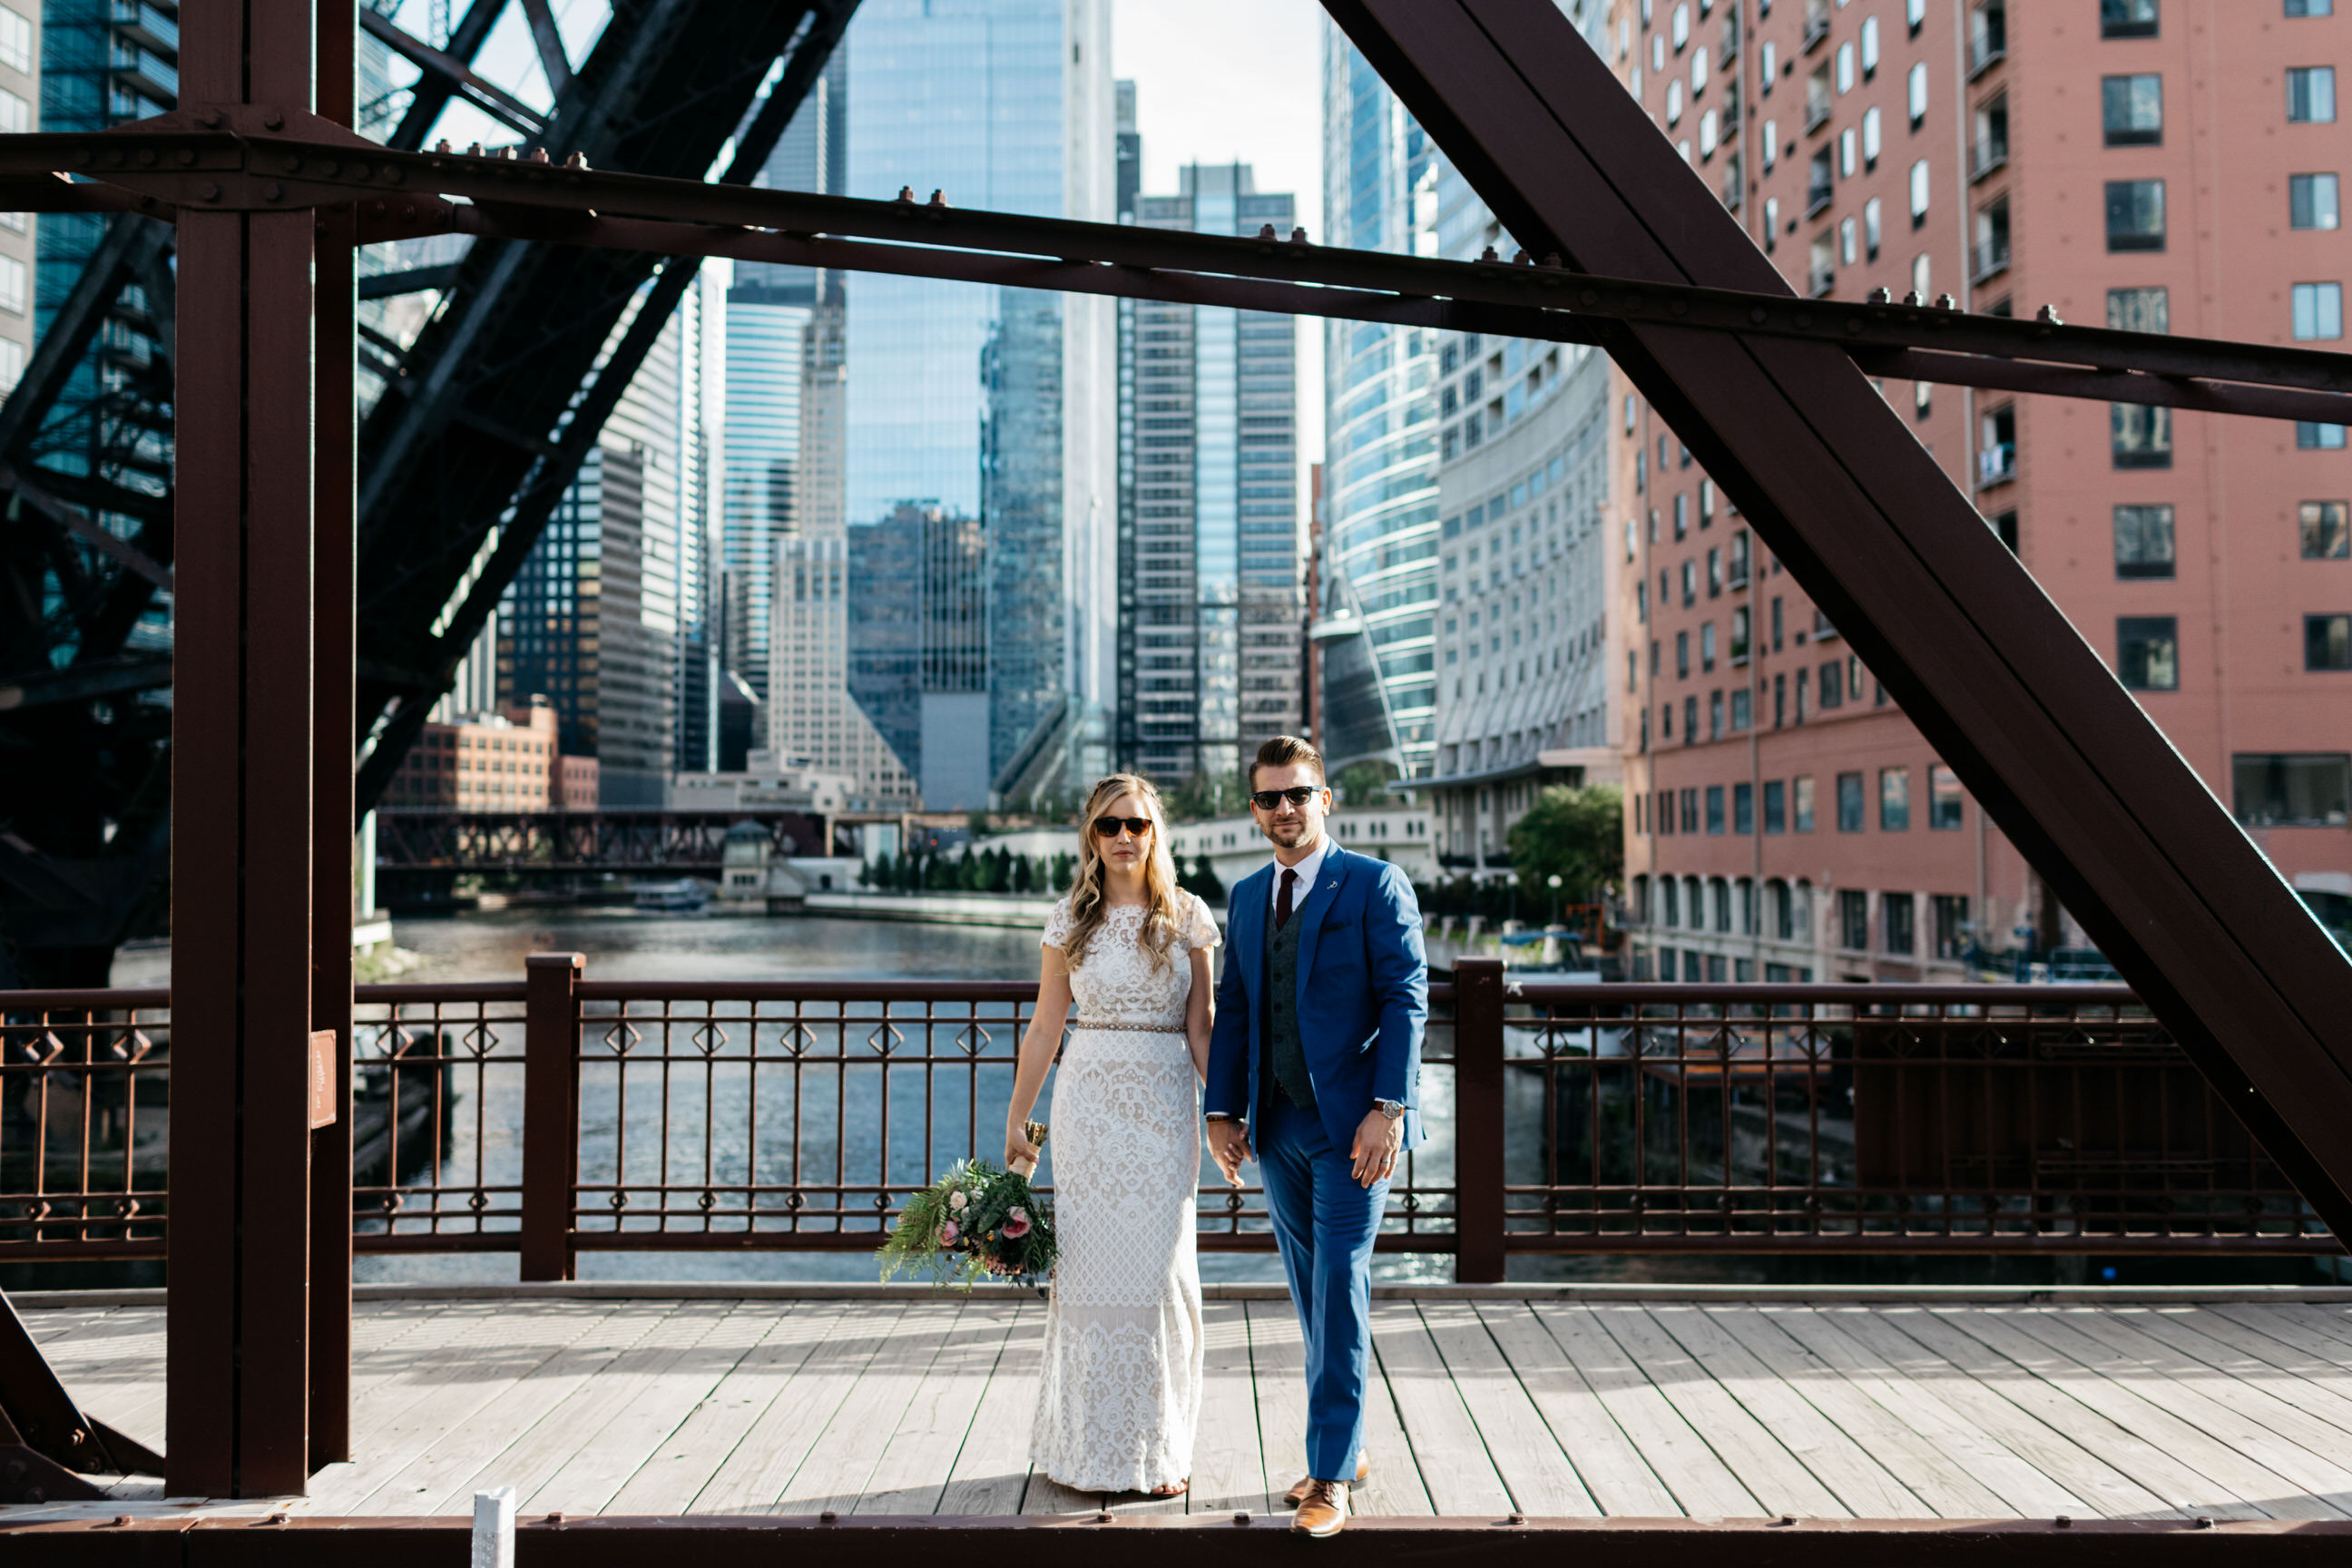 Kinzie Street Bridge Wedding Photos